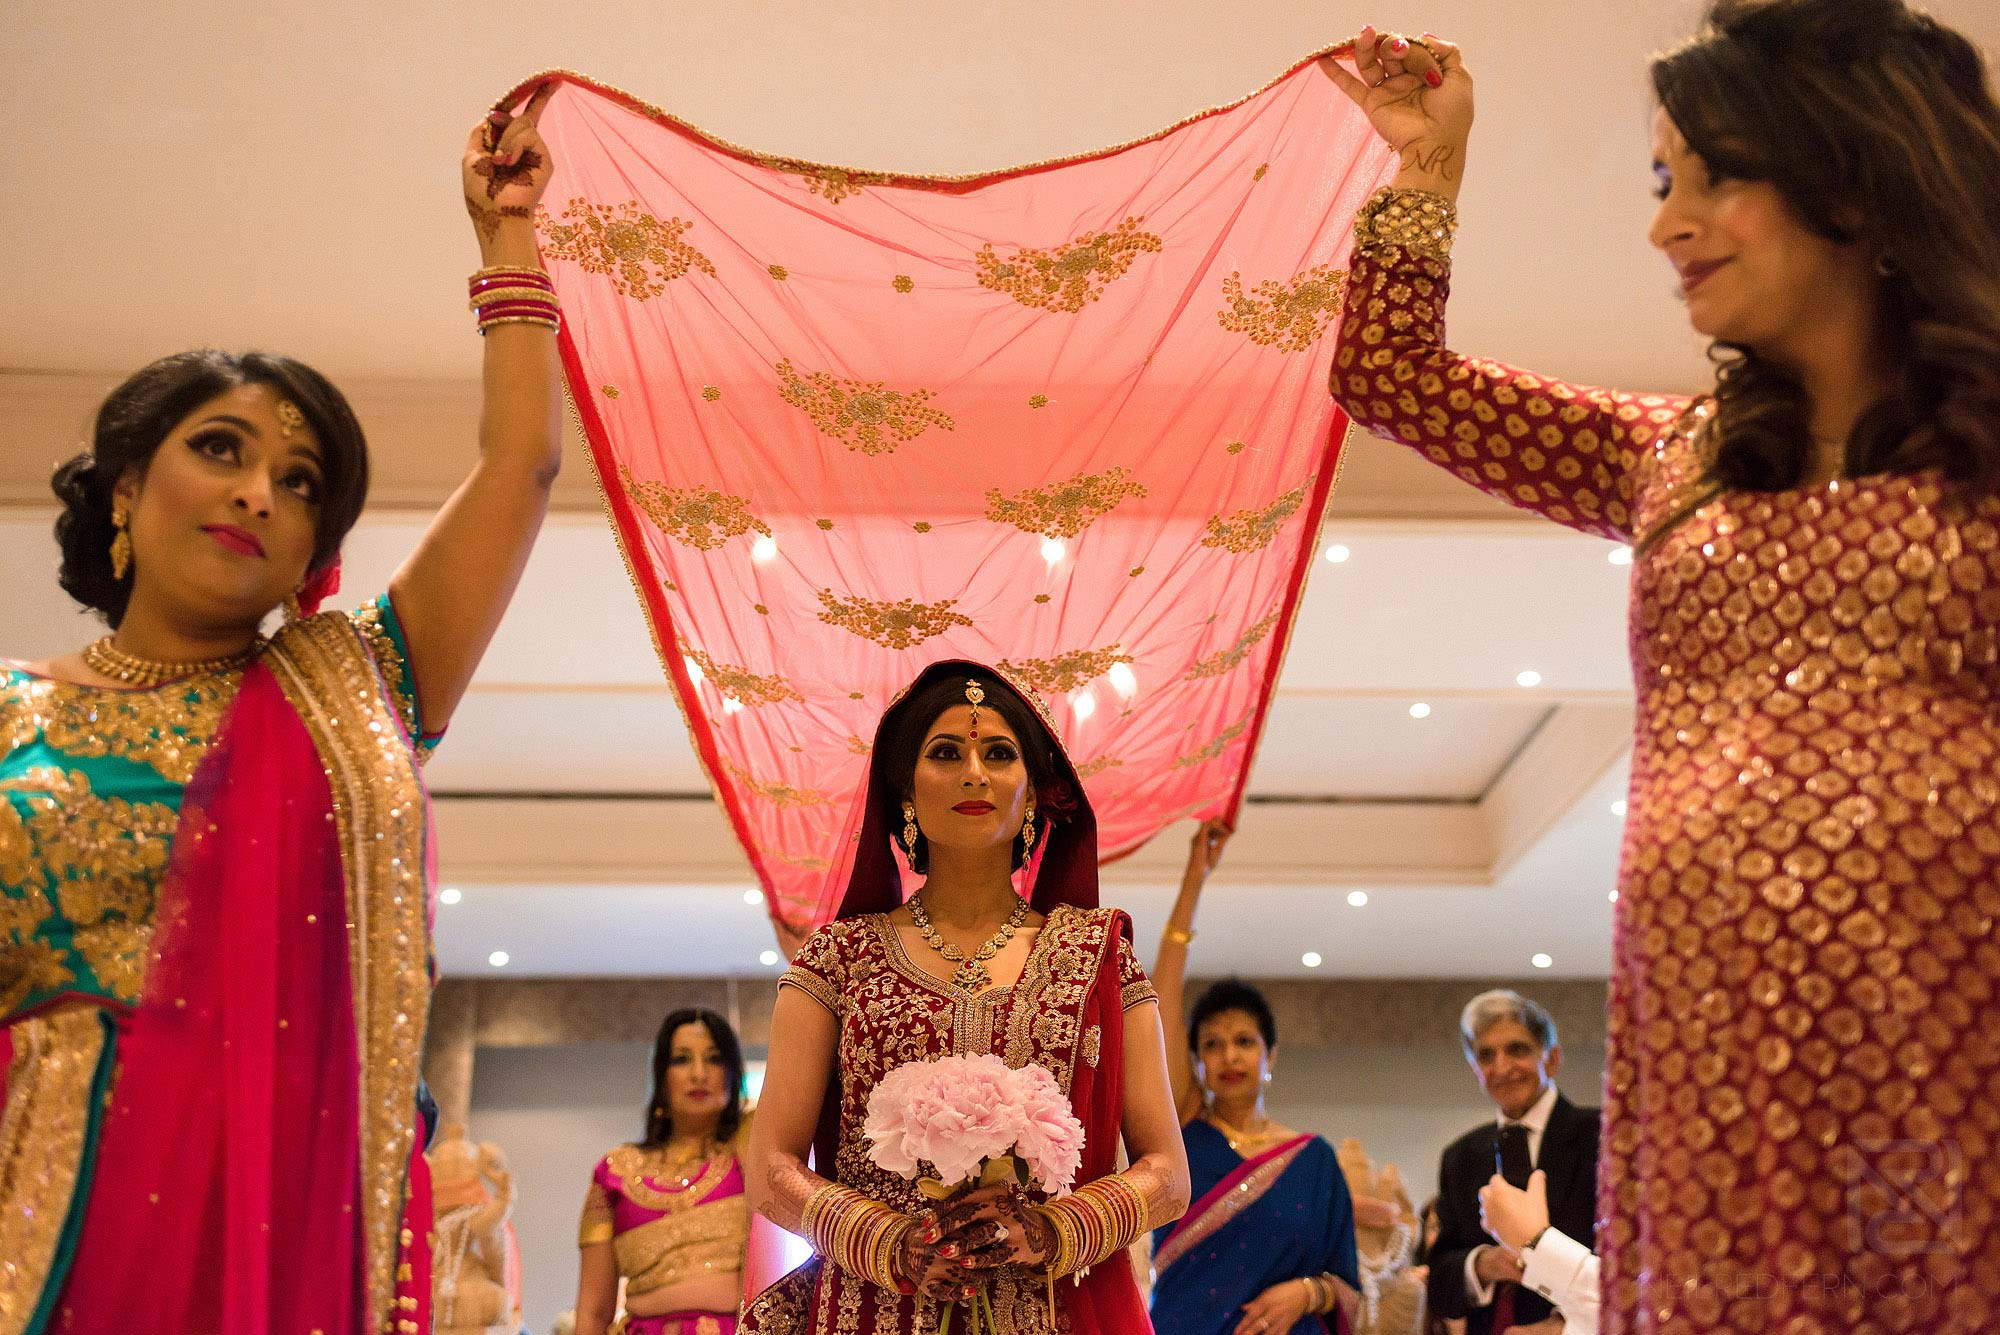 bride walking down aisle during Indian wedding ceremony